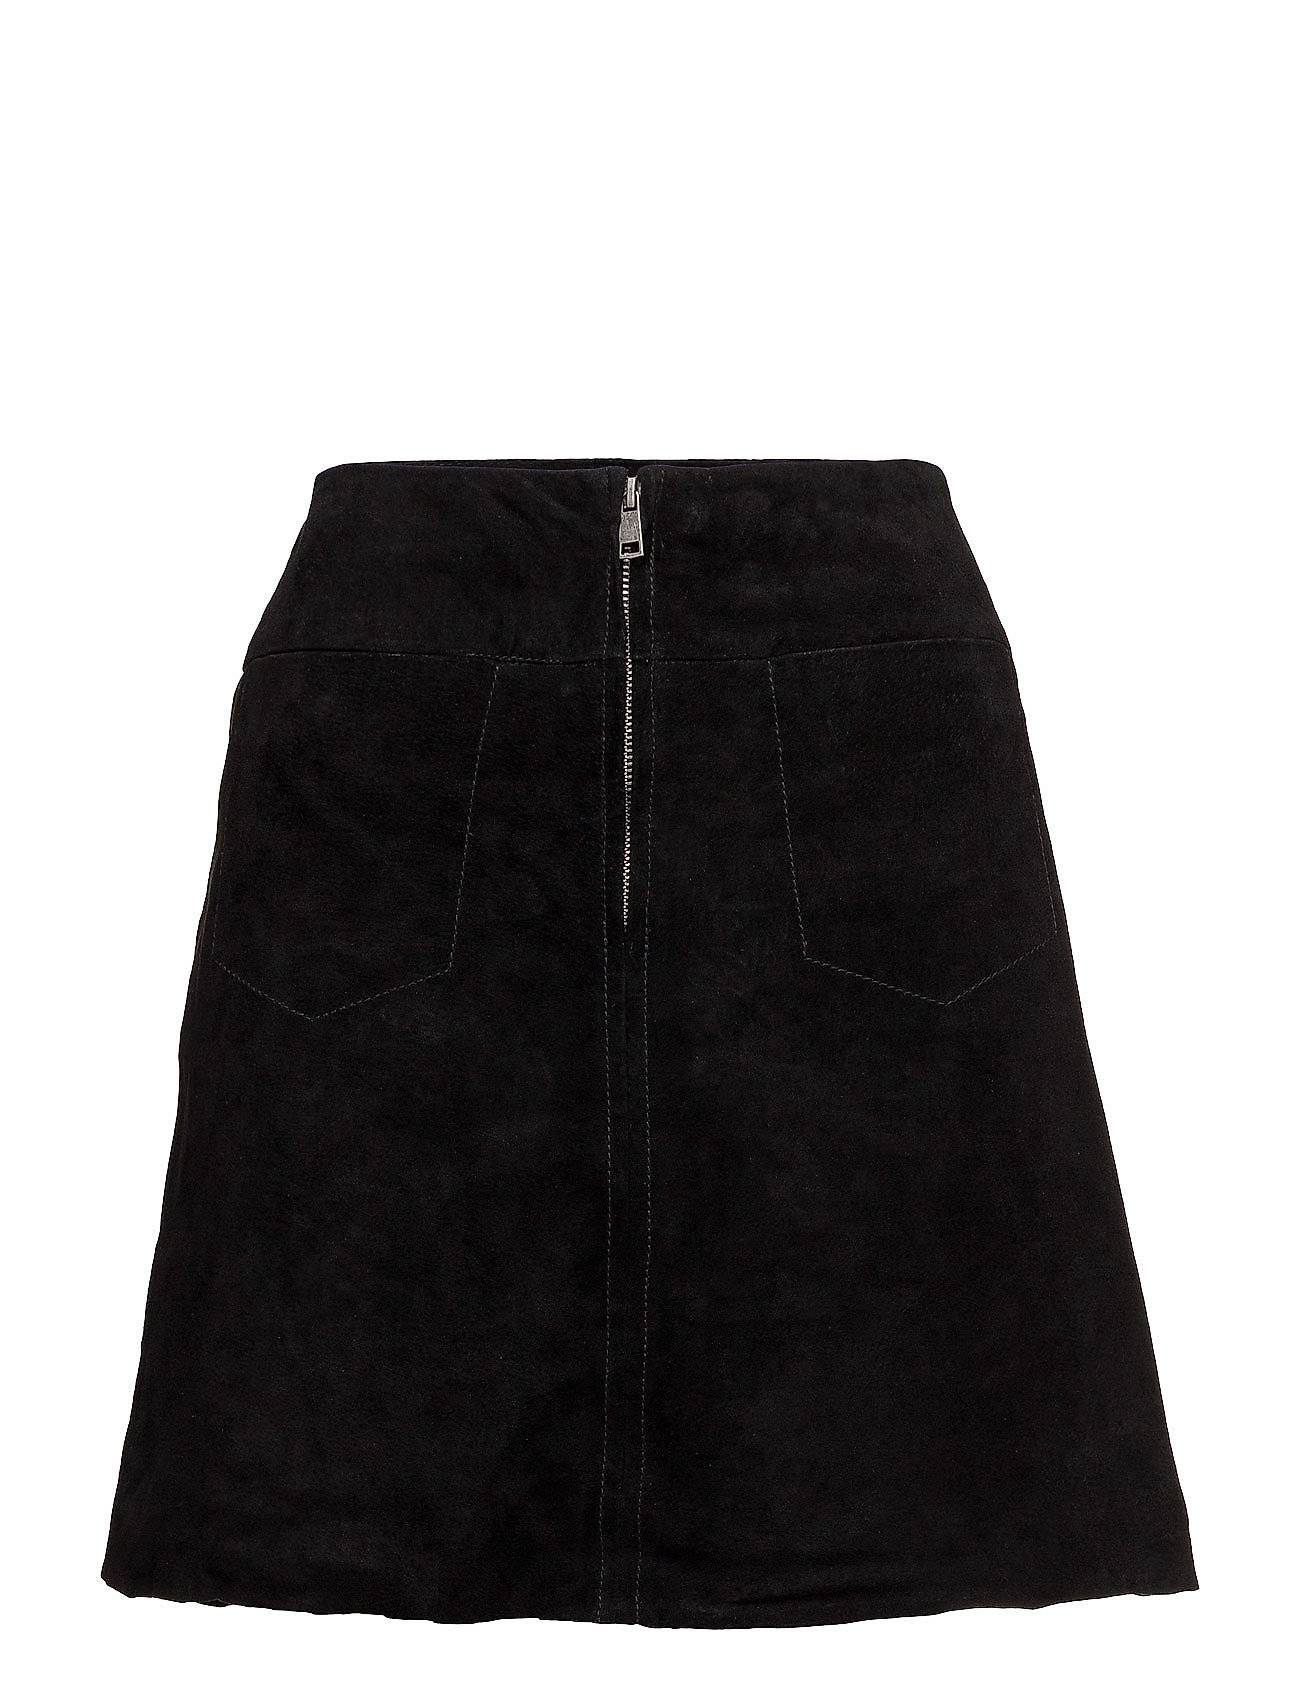 Selected Femme Sflore Mw Suede Skirt